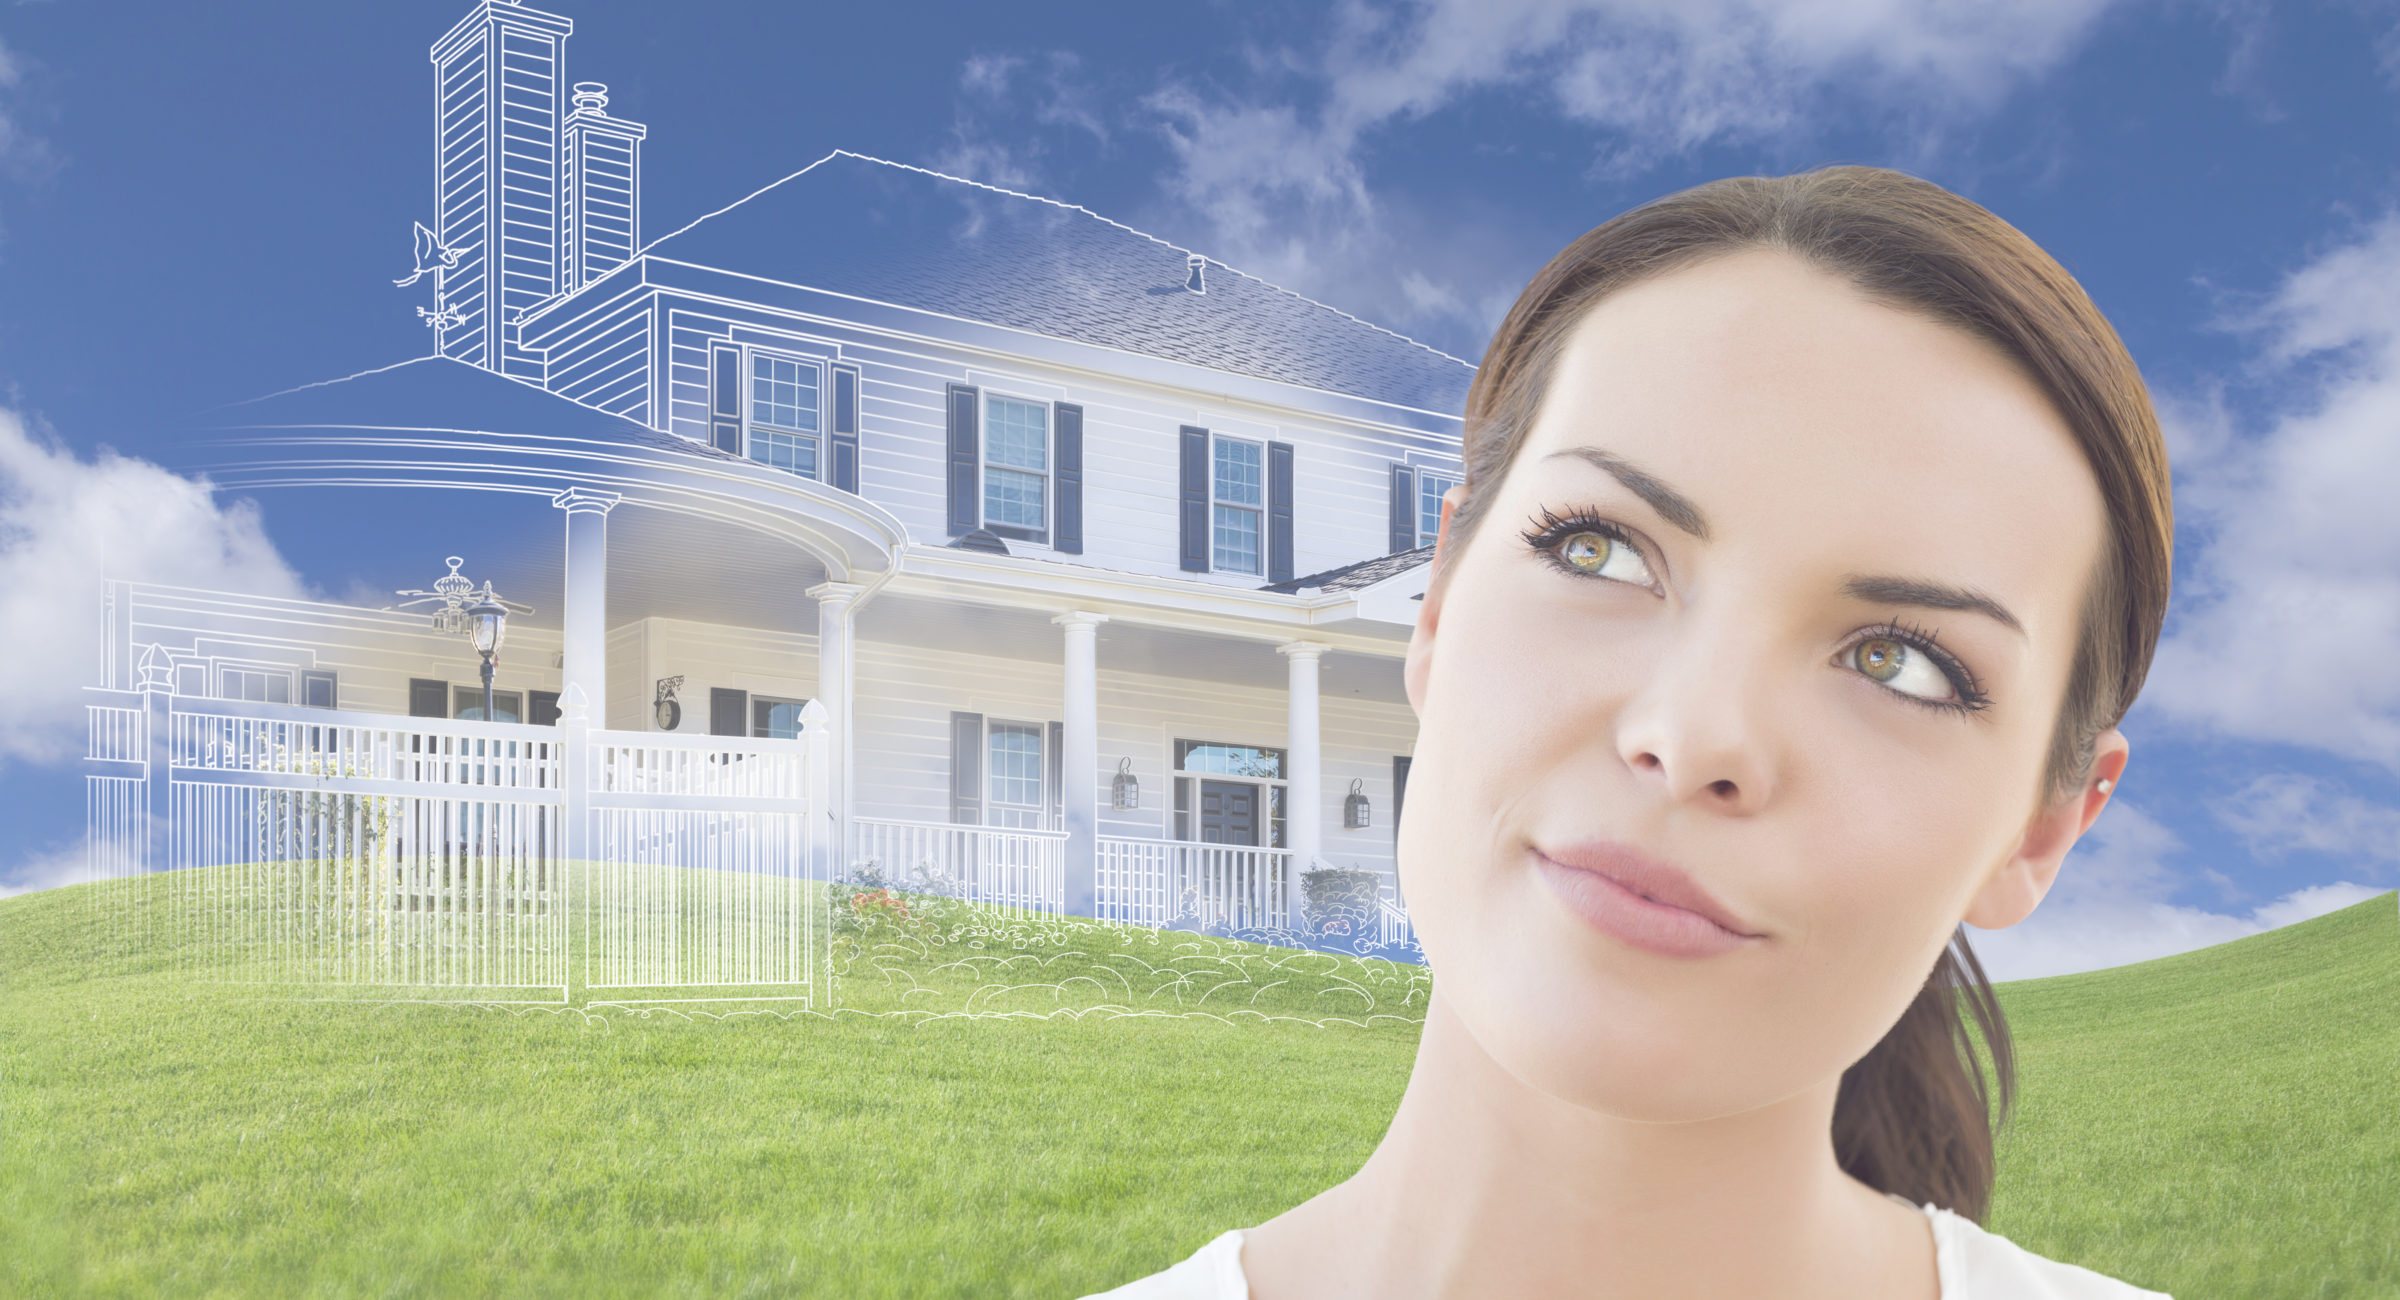 Curious Mixed Race Female Looks Over to Ghosted House Drawing, Partial Photo and Rolling Green Hills Behind.